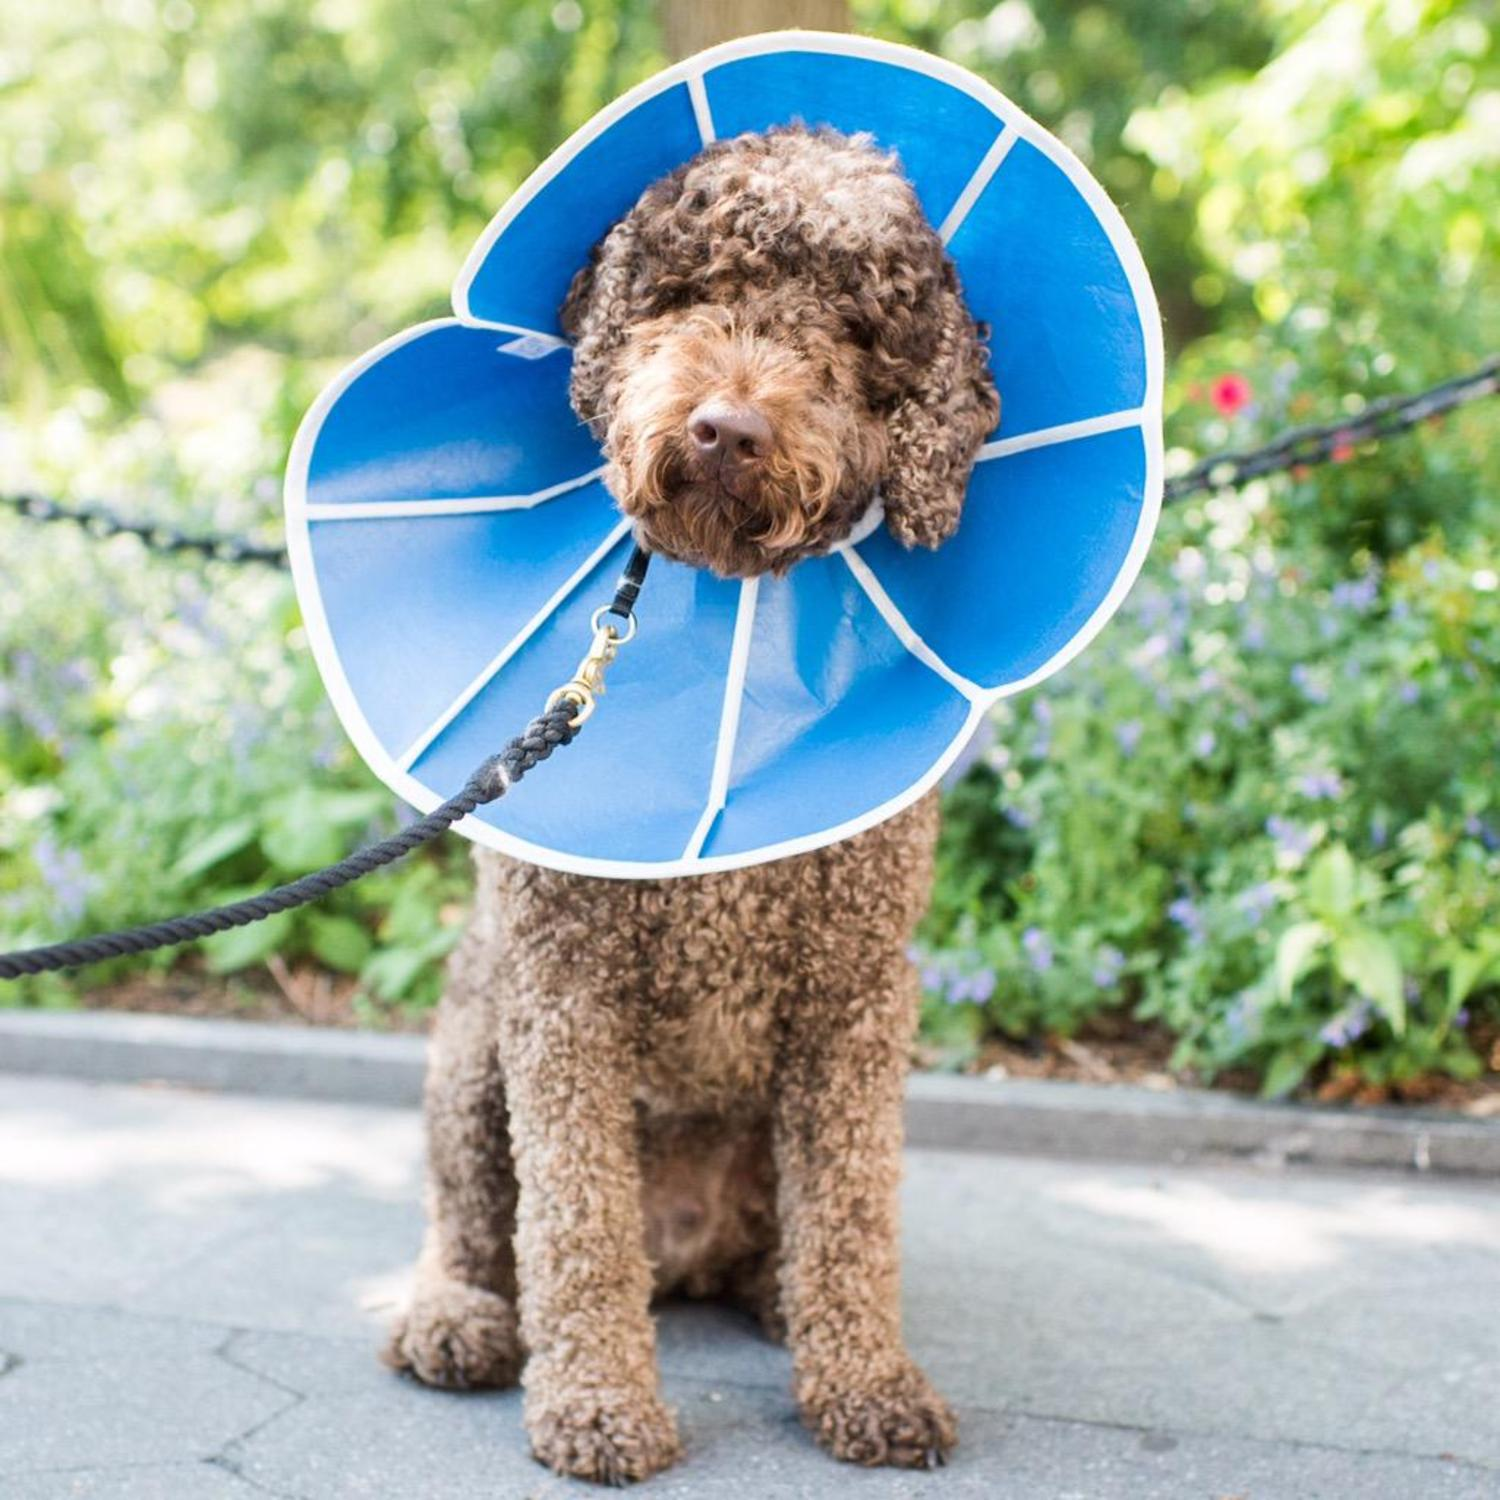 """Kiko, Labradoodle (2 y/o), Washington Square Park, NY, NY • """"He's wearing that so he doesn't lick his medicine off."""" http://t.co/QoqcPaaE87"""